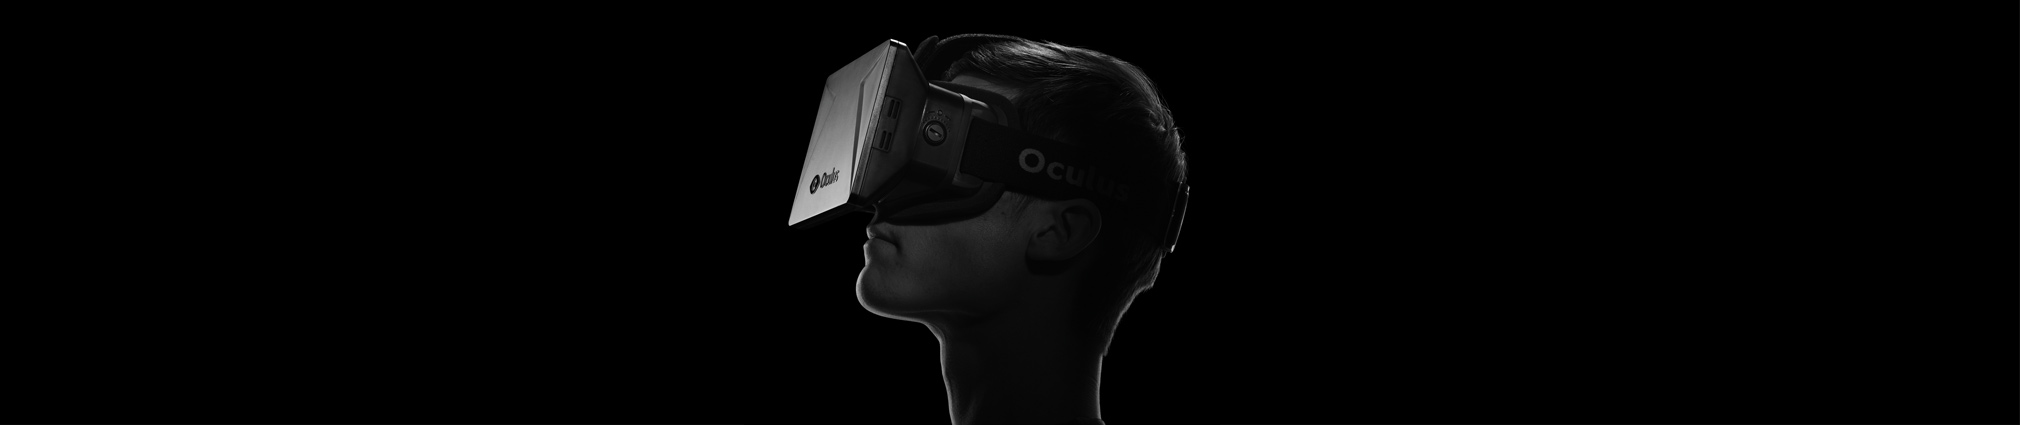 Above: A version of the Oculus Rift headset was made available to developers last year.